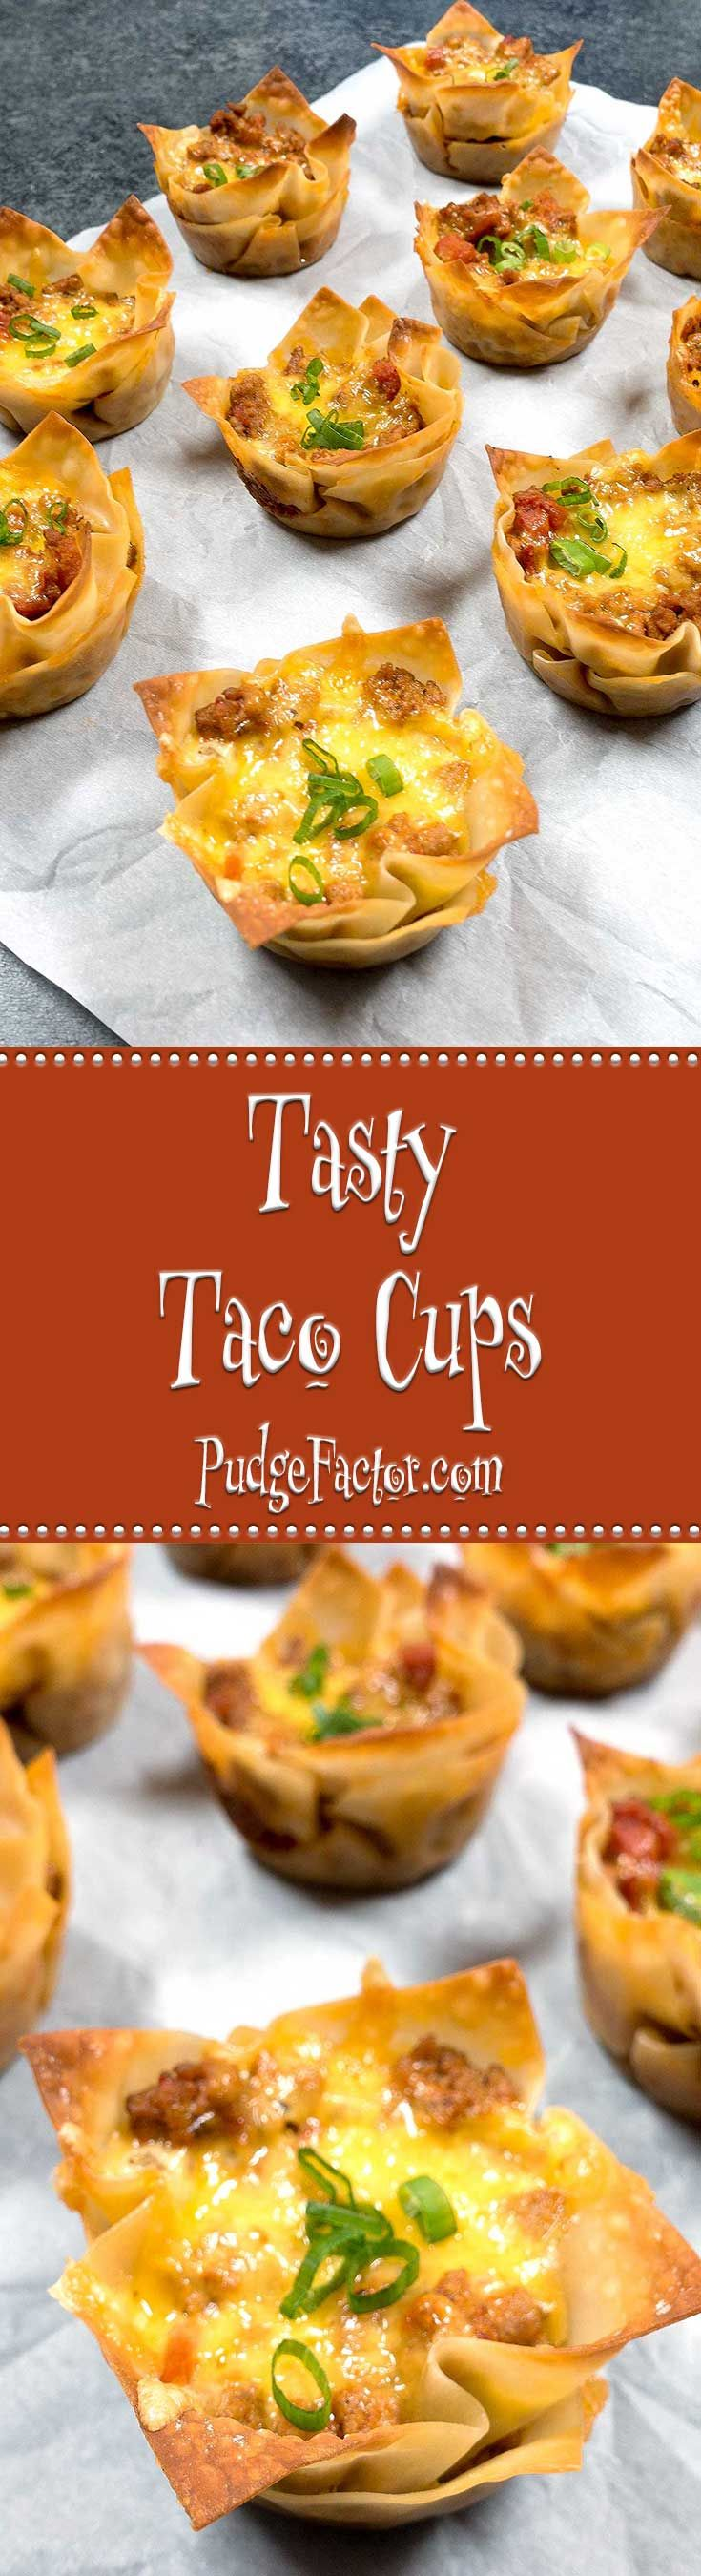 Tasty taco filling layered with melted cheese in crispy wonton wrappers makes the perfect easy to make appetizer.  via @c2king